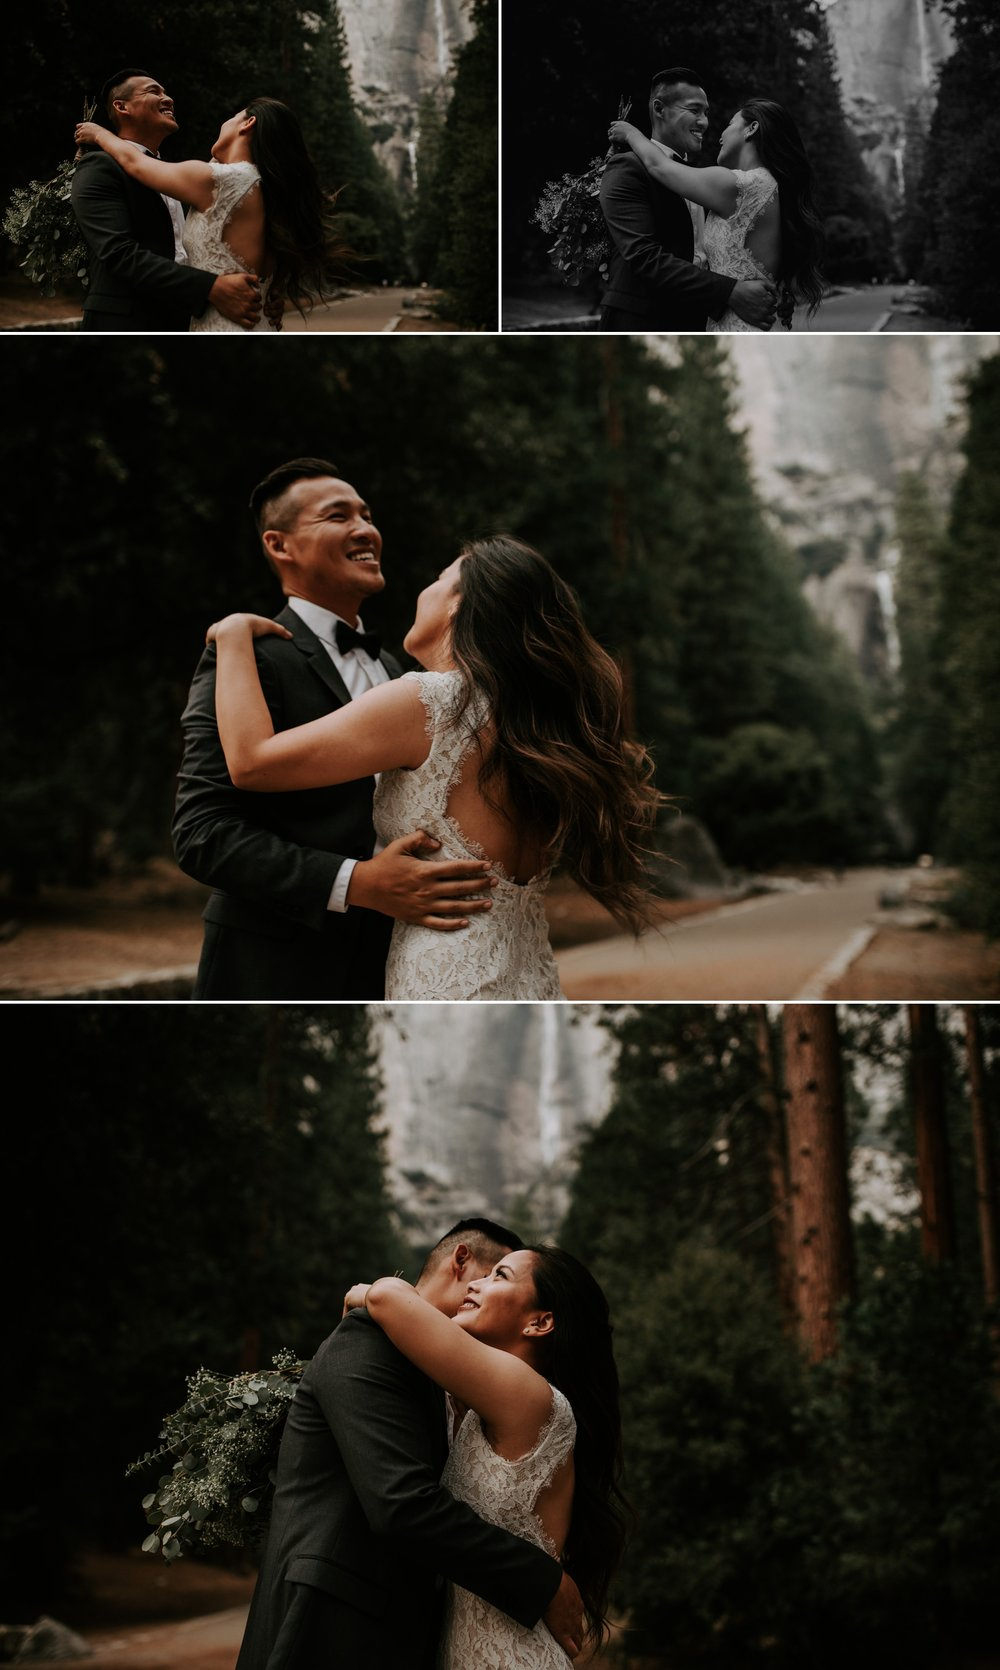 Yosemite-Elopement-Photographer8.jpg